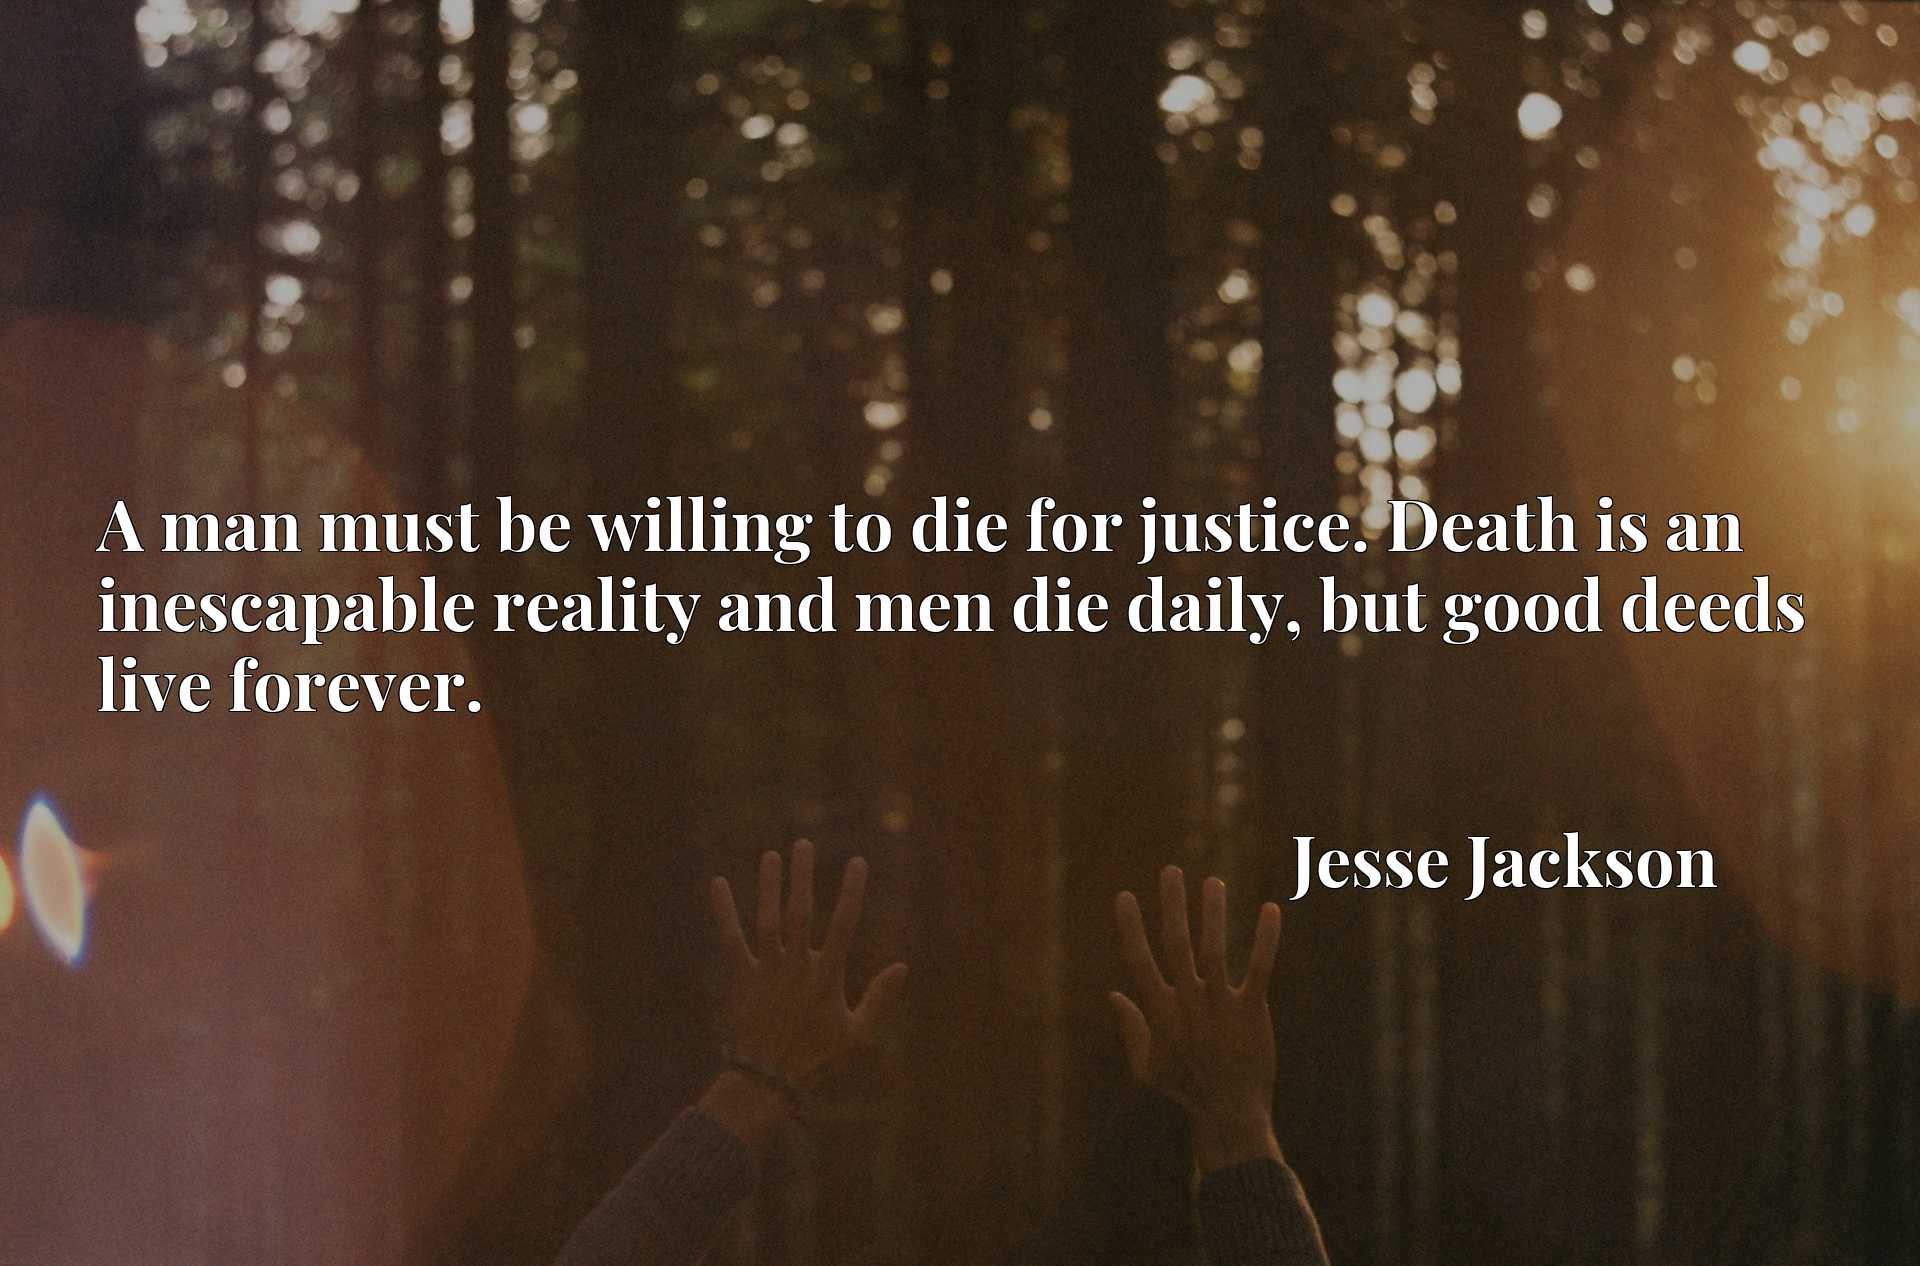 A man must be willing to die for justice. Death is an inescapable reality and men die daily, but good deeds live forever.